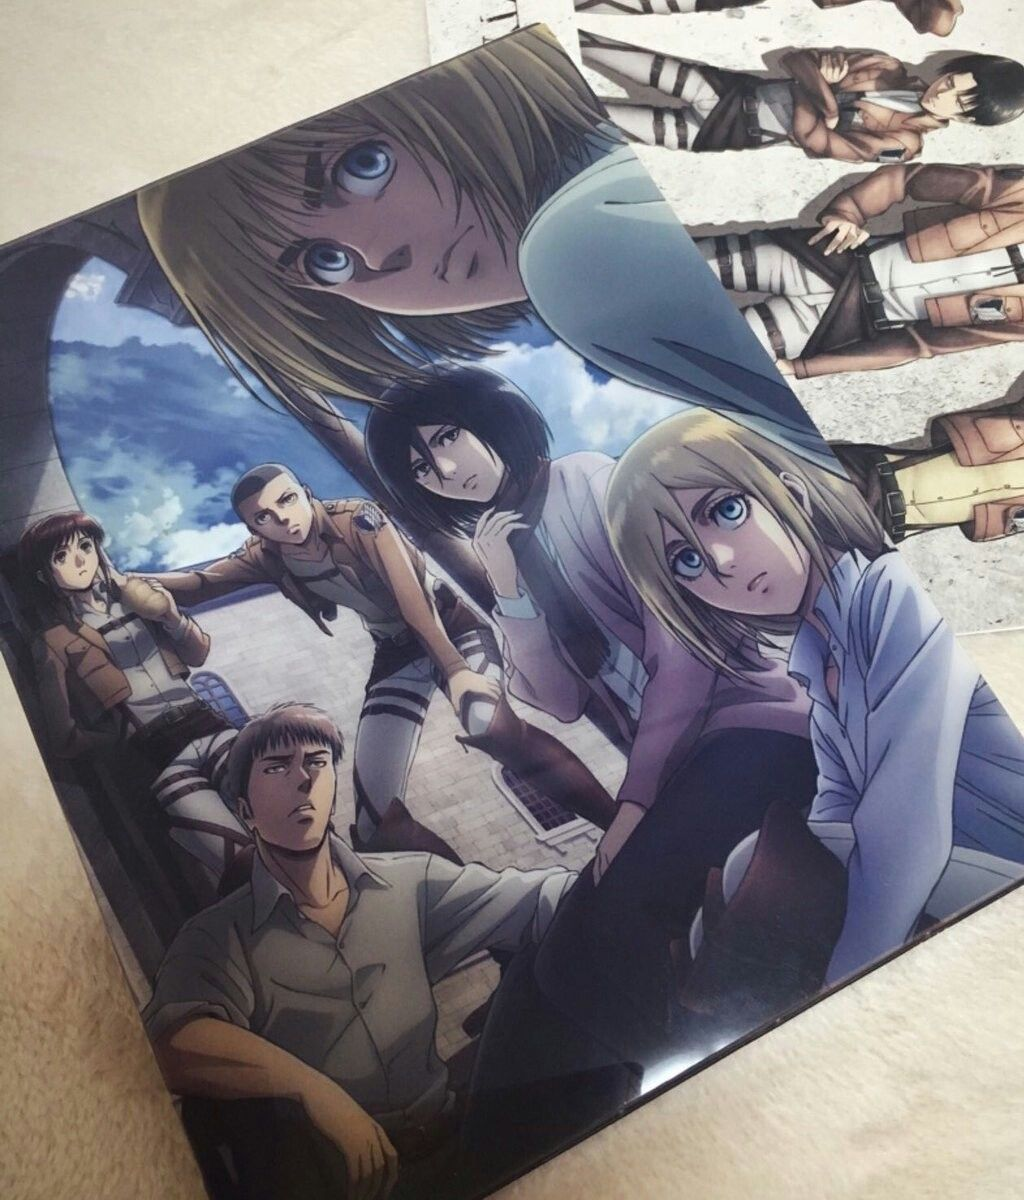 Pin De Animelover0726 Em Attack On Titan Anime Ataque De Titans